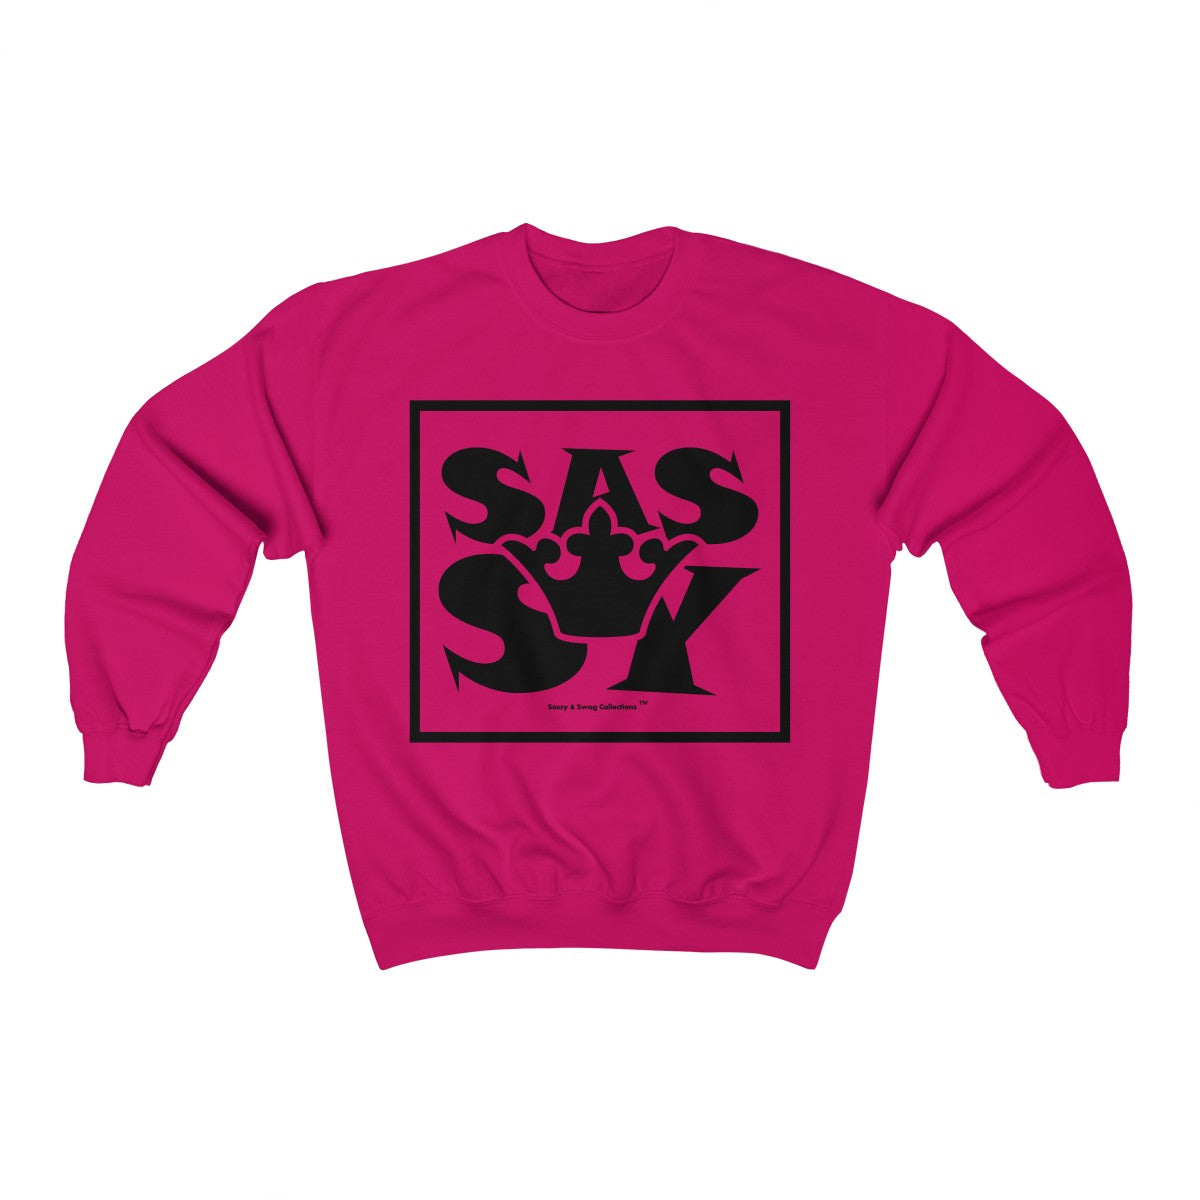 Sassy & Swag Collections - Sassy Queen Women's Heavy Blend™ Crewneck Sweatshirt